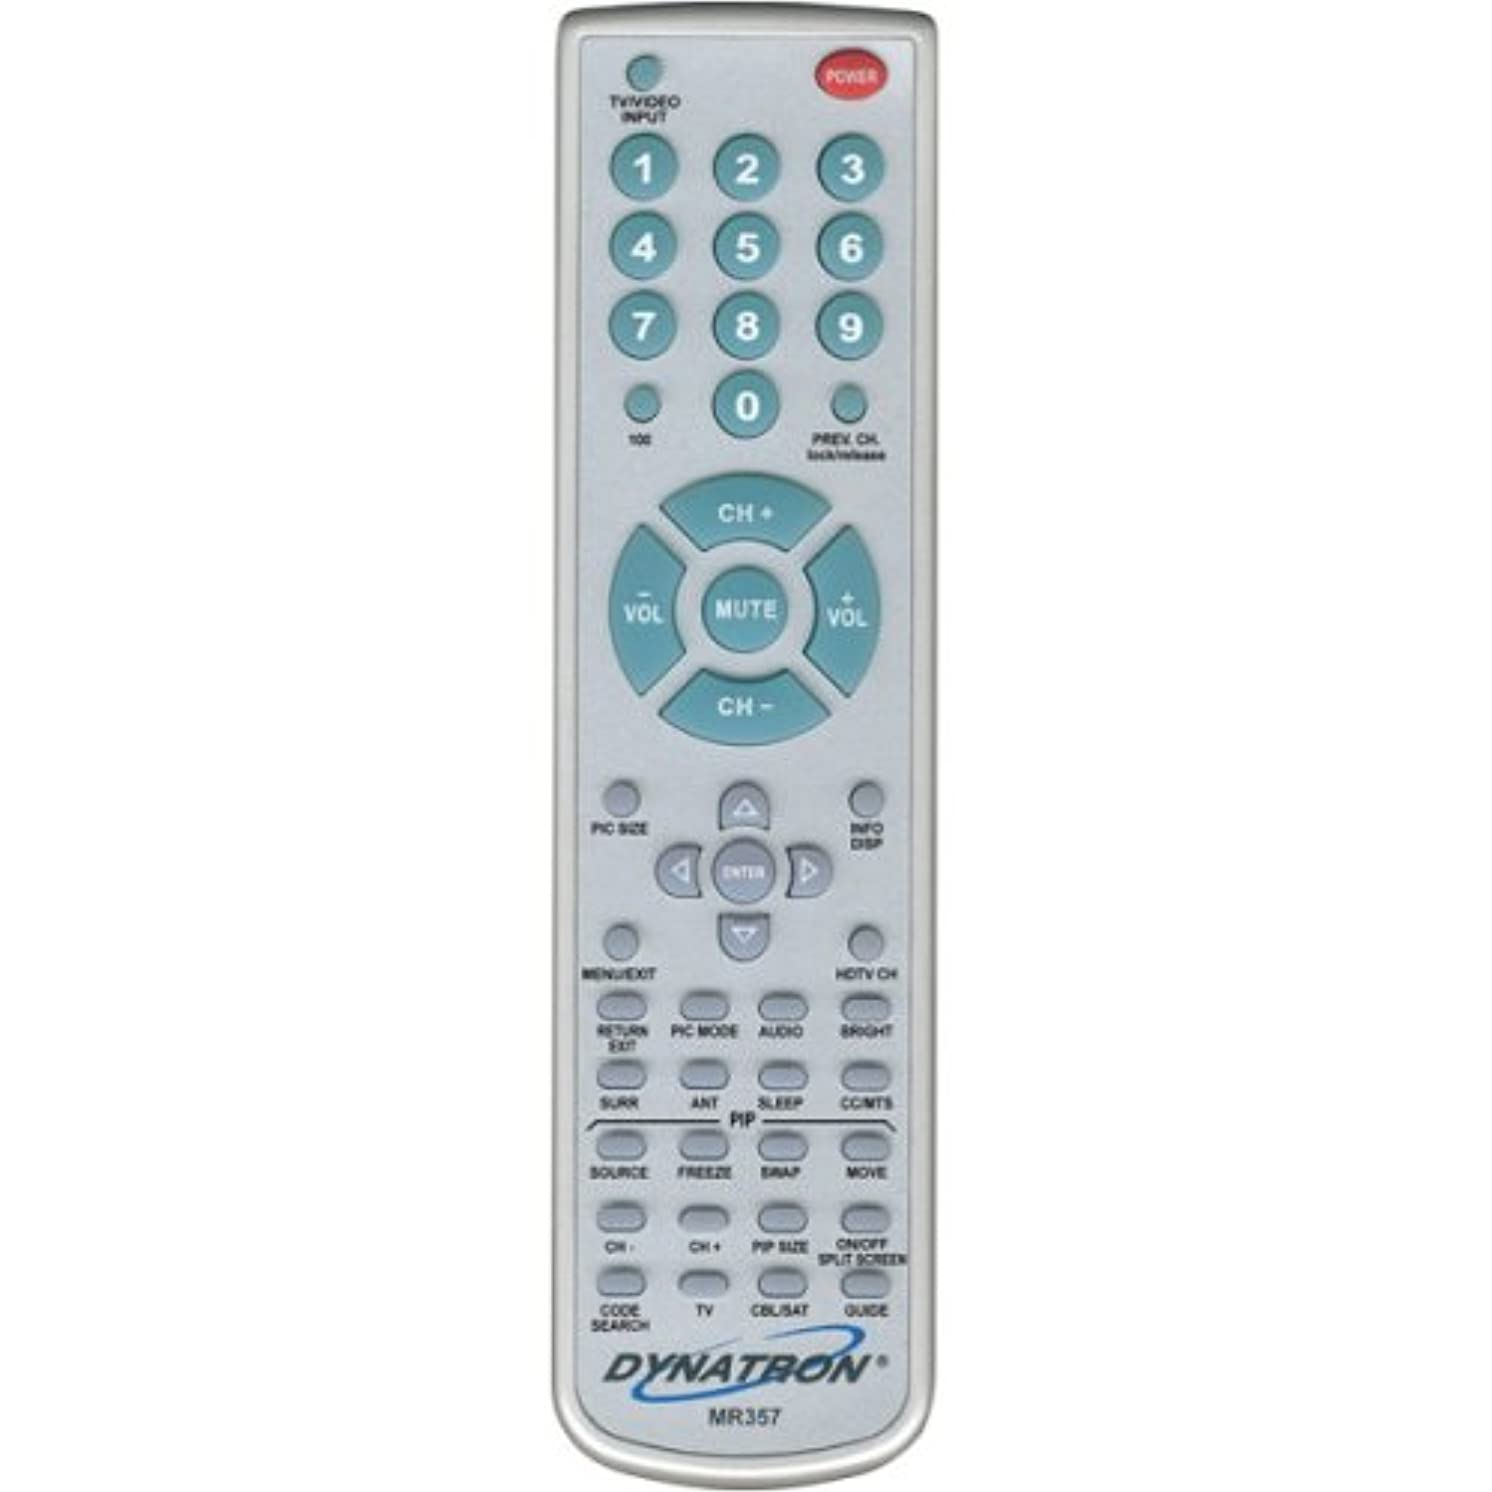 Miracle Remote for Sharp, Mitsubishi or Samsung TV (Discontinued by Manufacturer)